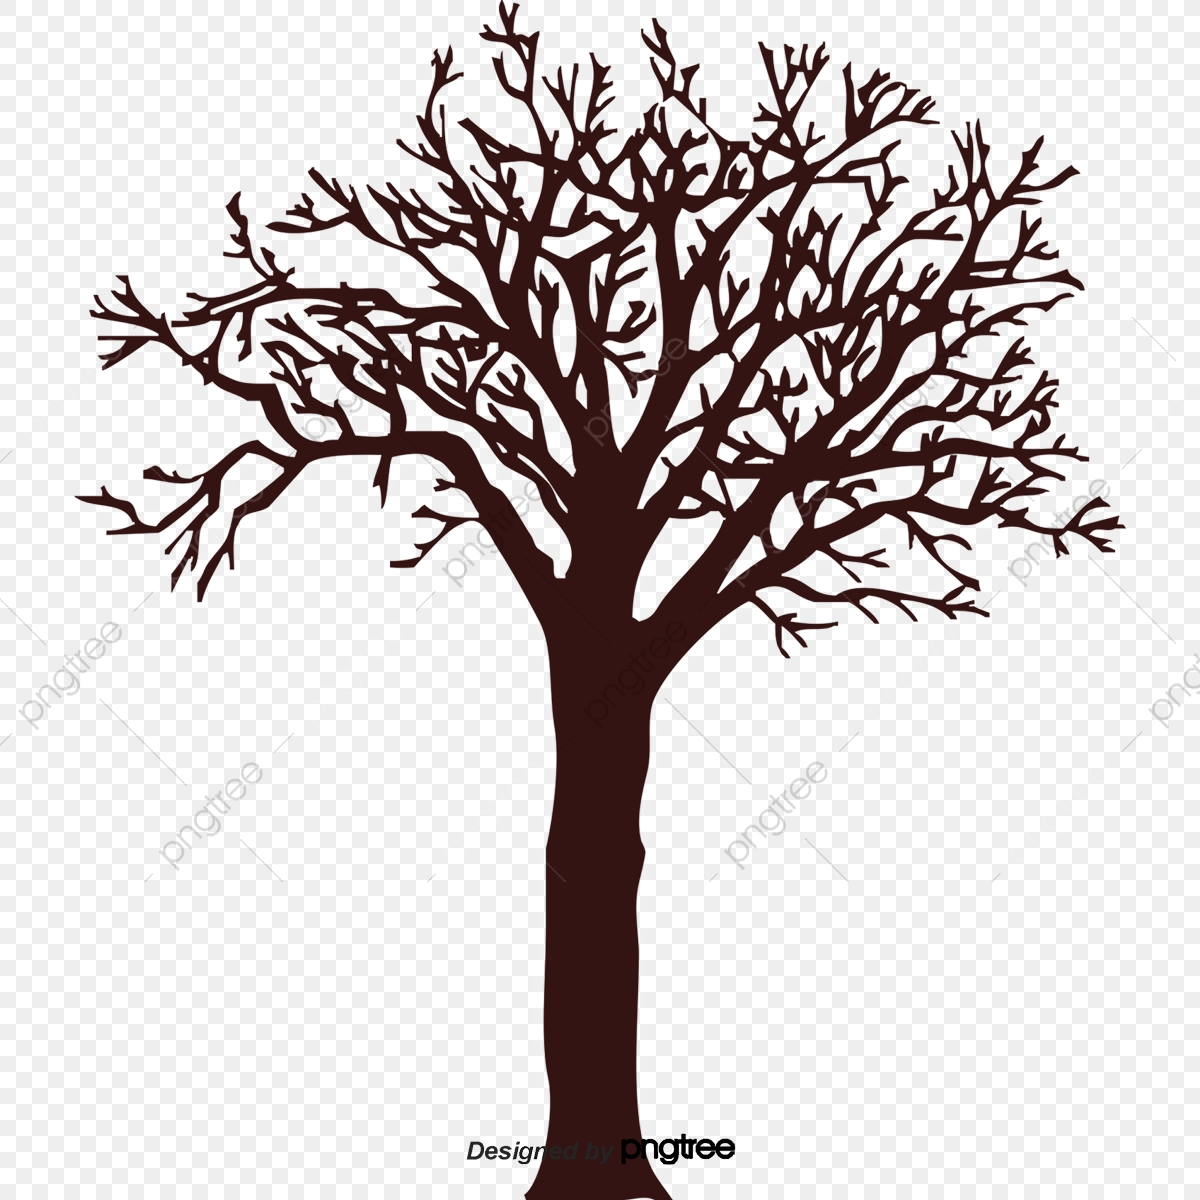 Cartoon Coffee Tree Silhouette Element Winter Cartoon Png Transparent Clipart Image And Psd File For Free Download We provide millions of free to download high definition png images. https pngtree com freepng cartoon coffee tree silhouette 4283378 html